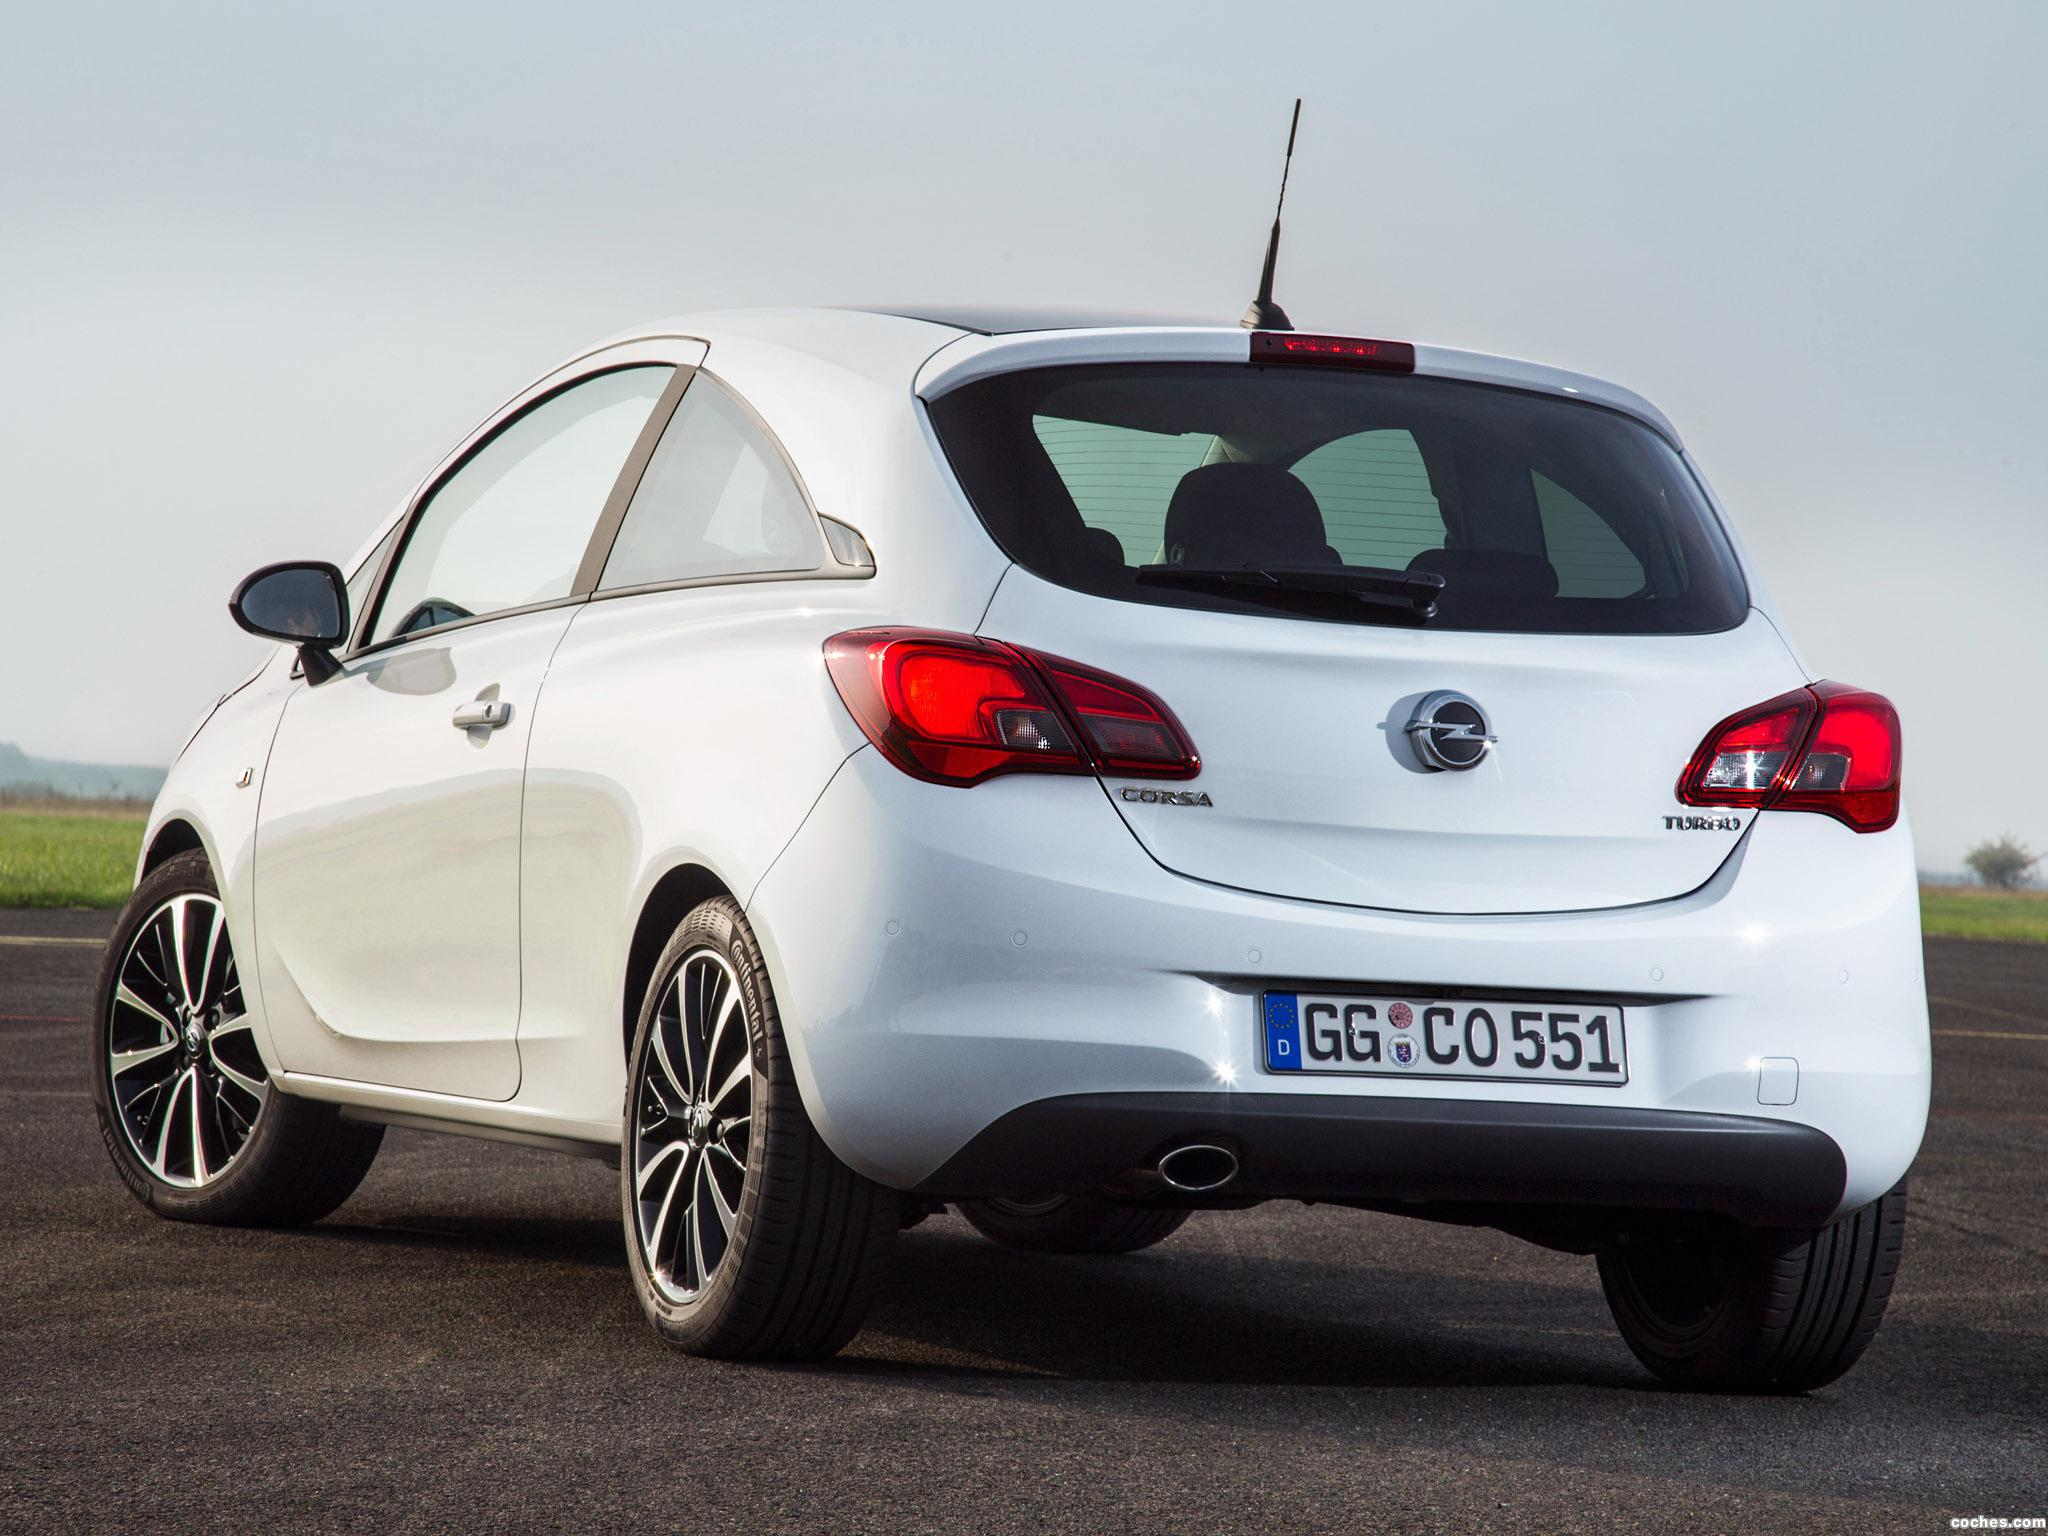 opel corsa 3 puertas color edition 2015 - Opel Corsa Color Edition 2015